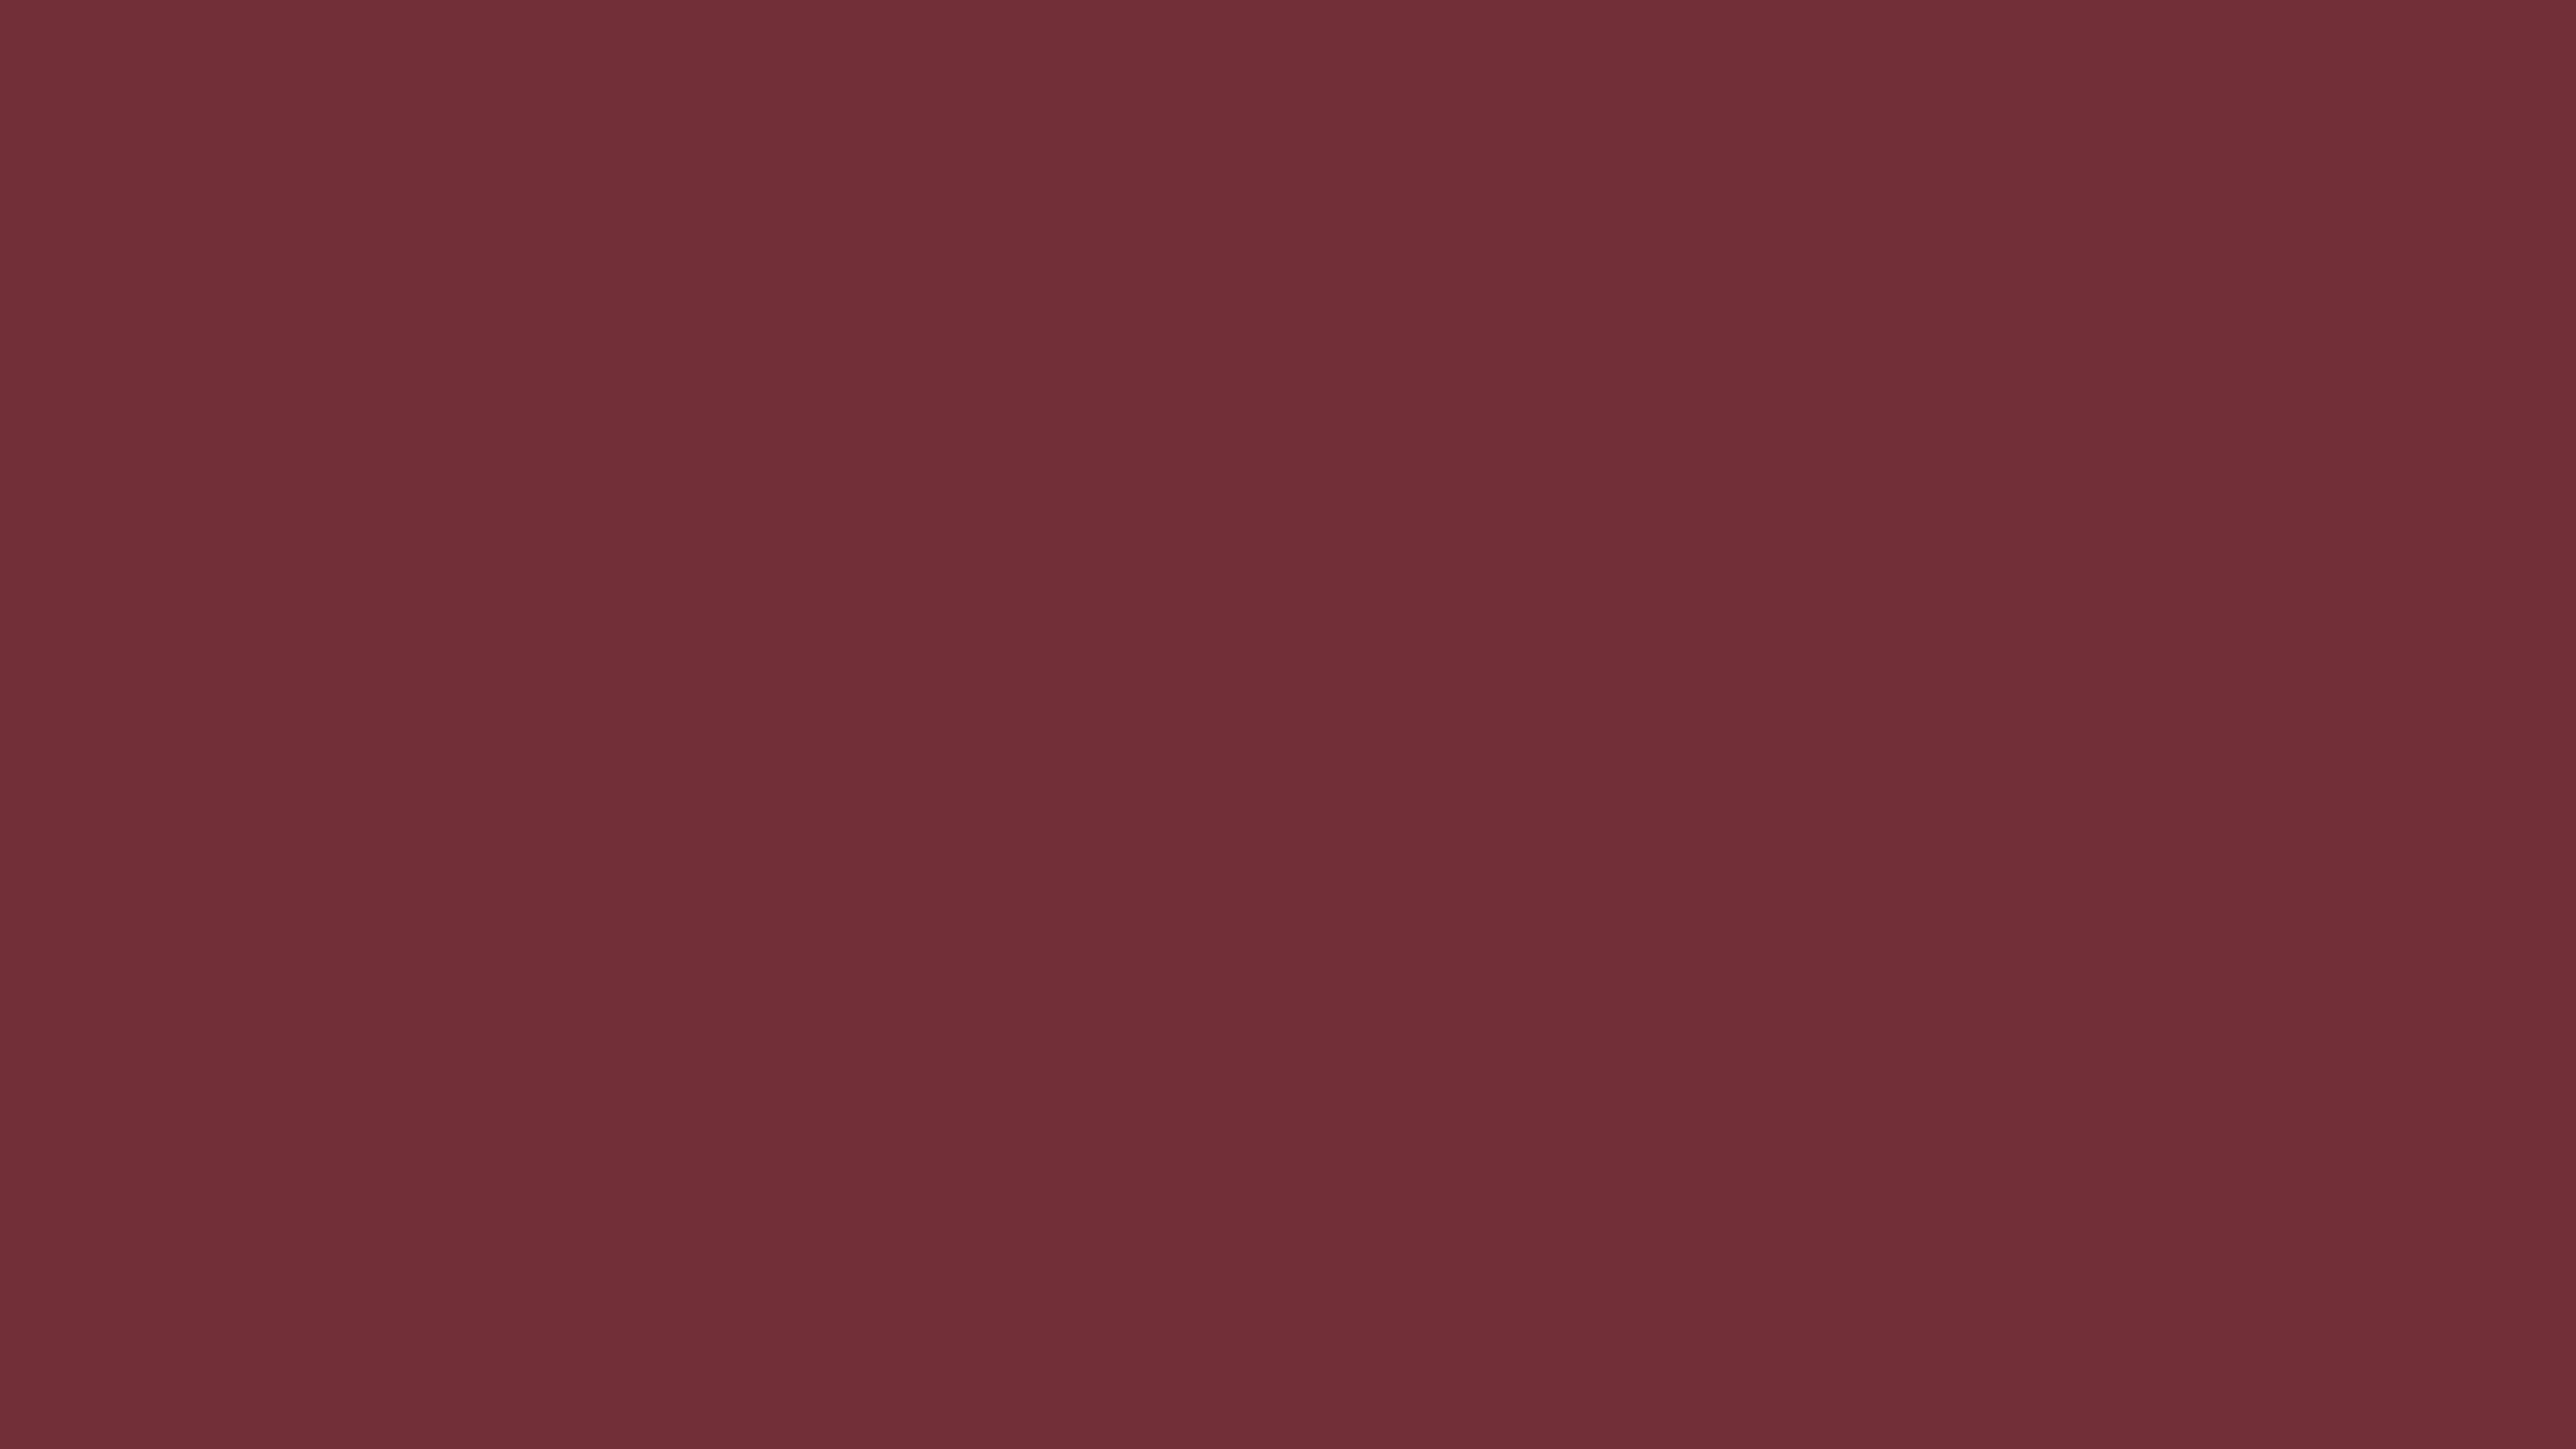 Wine Solid Color Background Wallpaper [5120x2880]